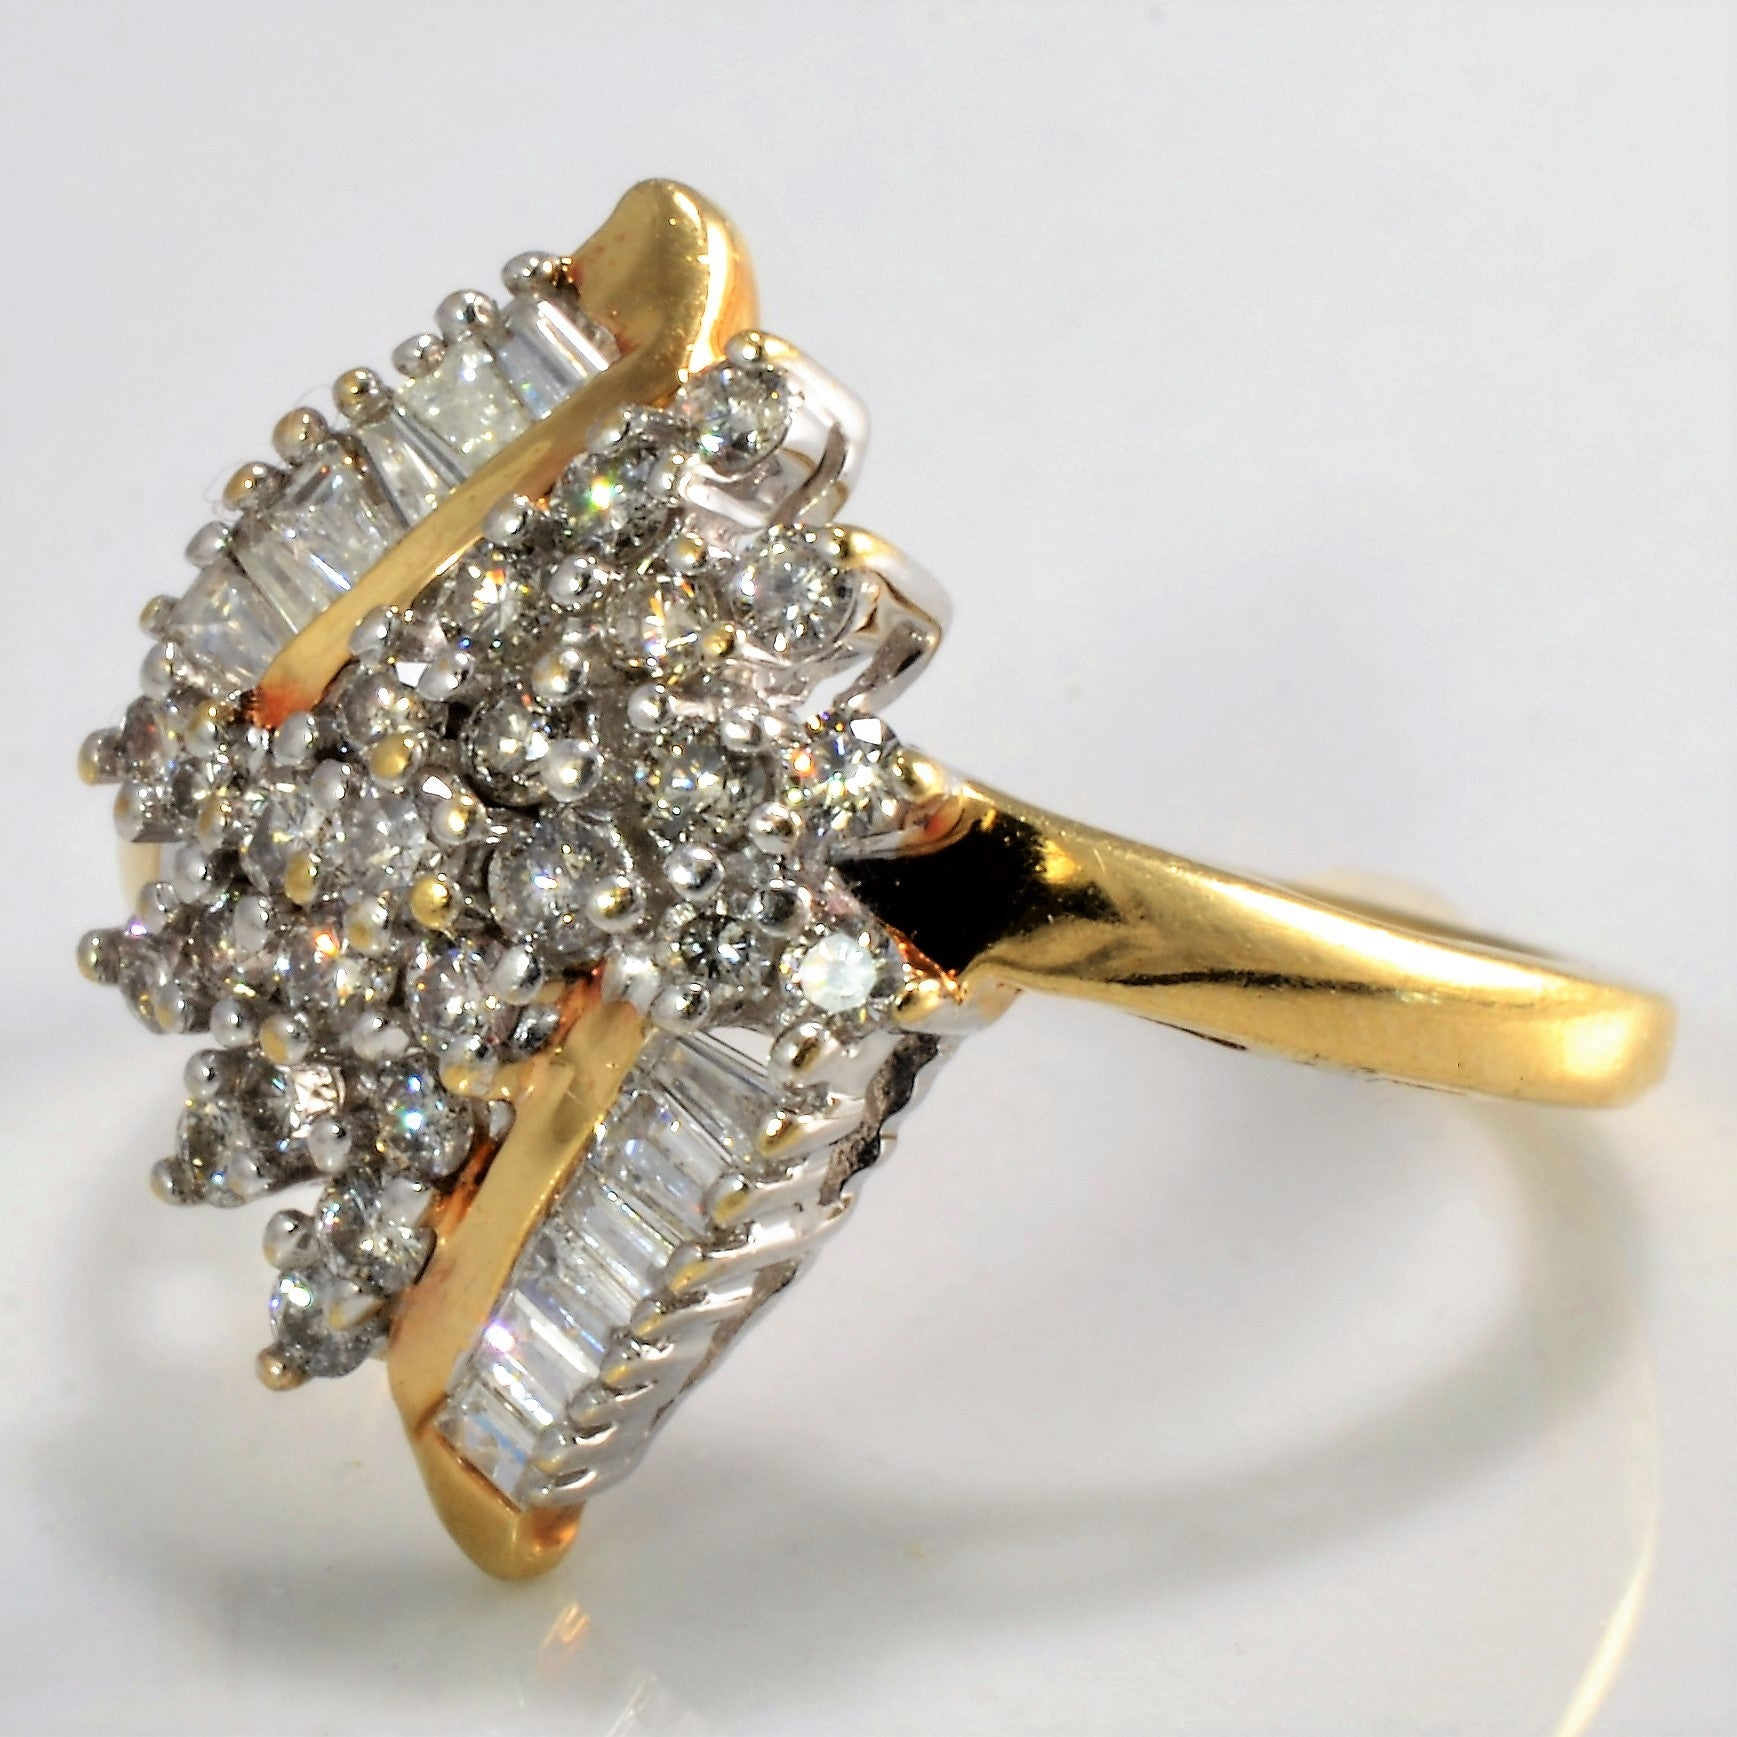 Elegant Waterfall Marquise Shaped Diamond Cluster Ring | 0.52 ctw, SZ 5 |